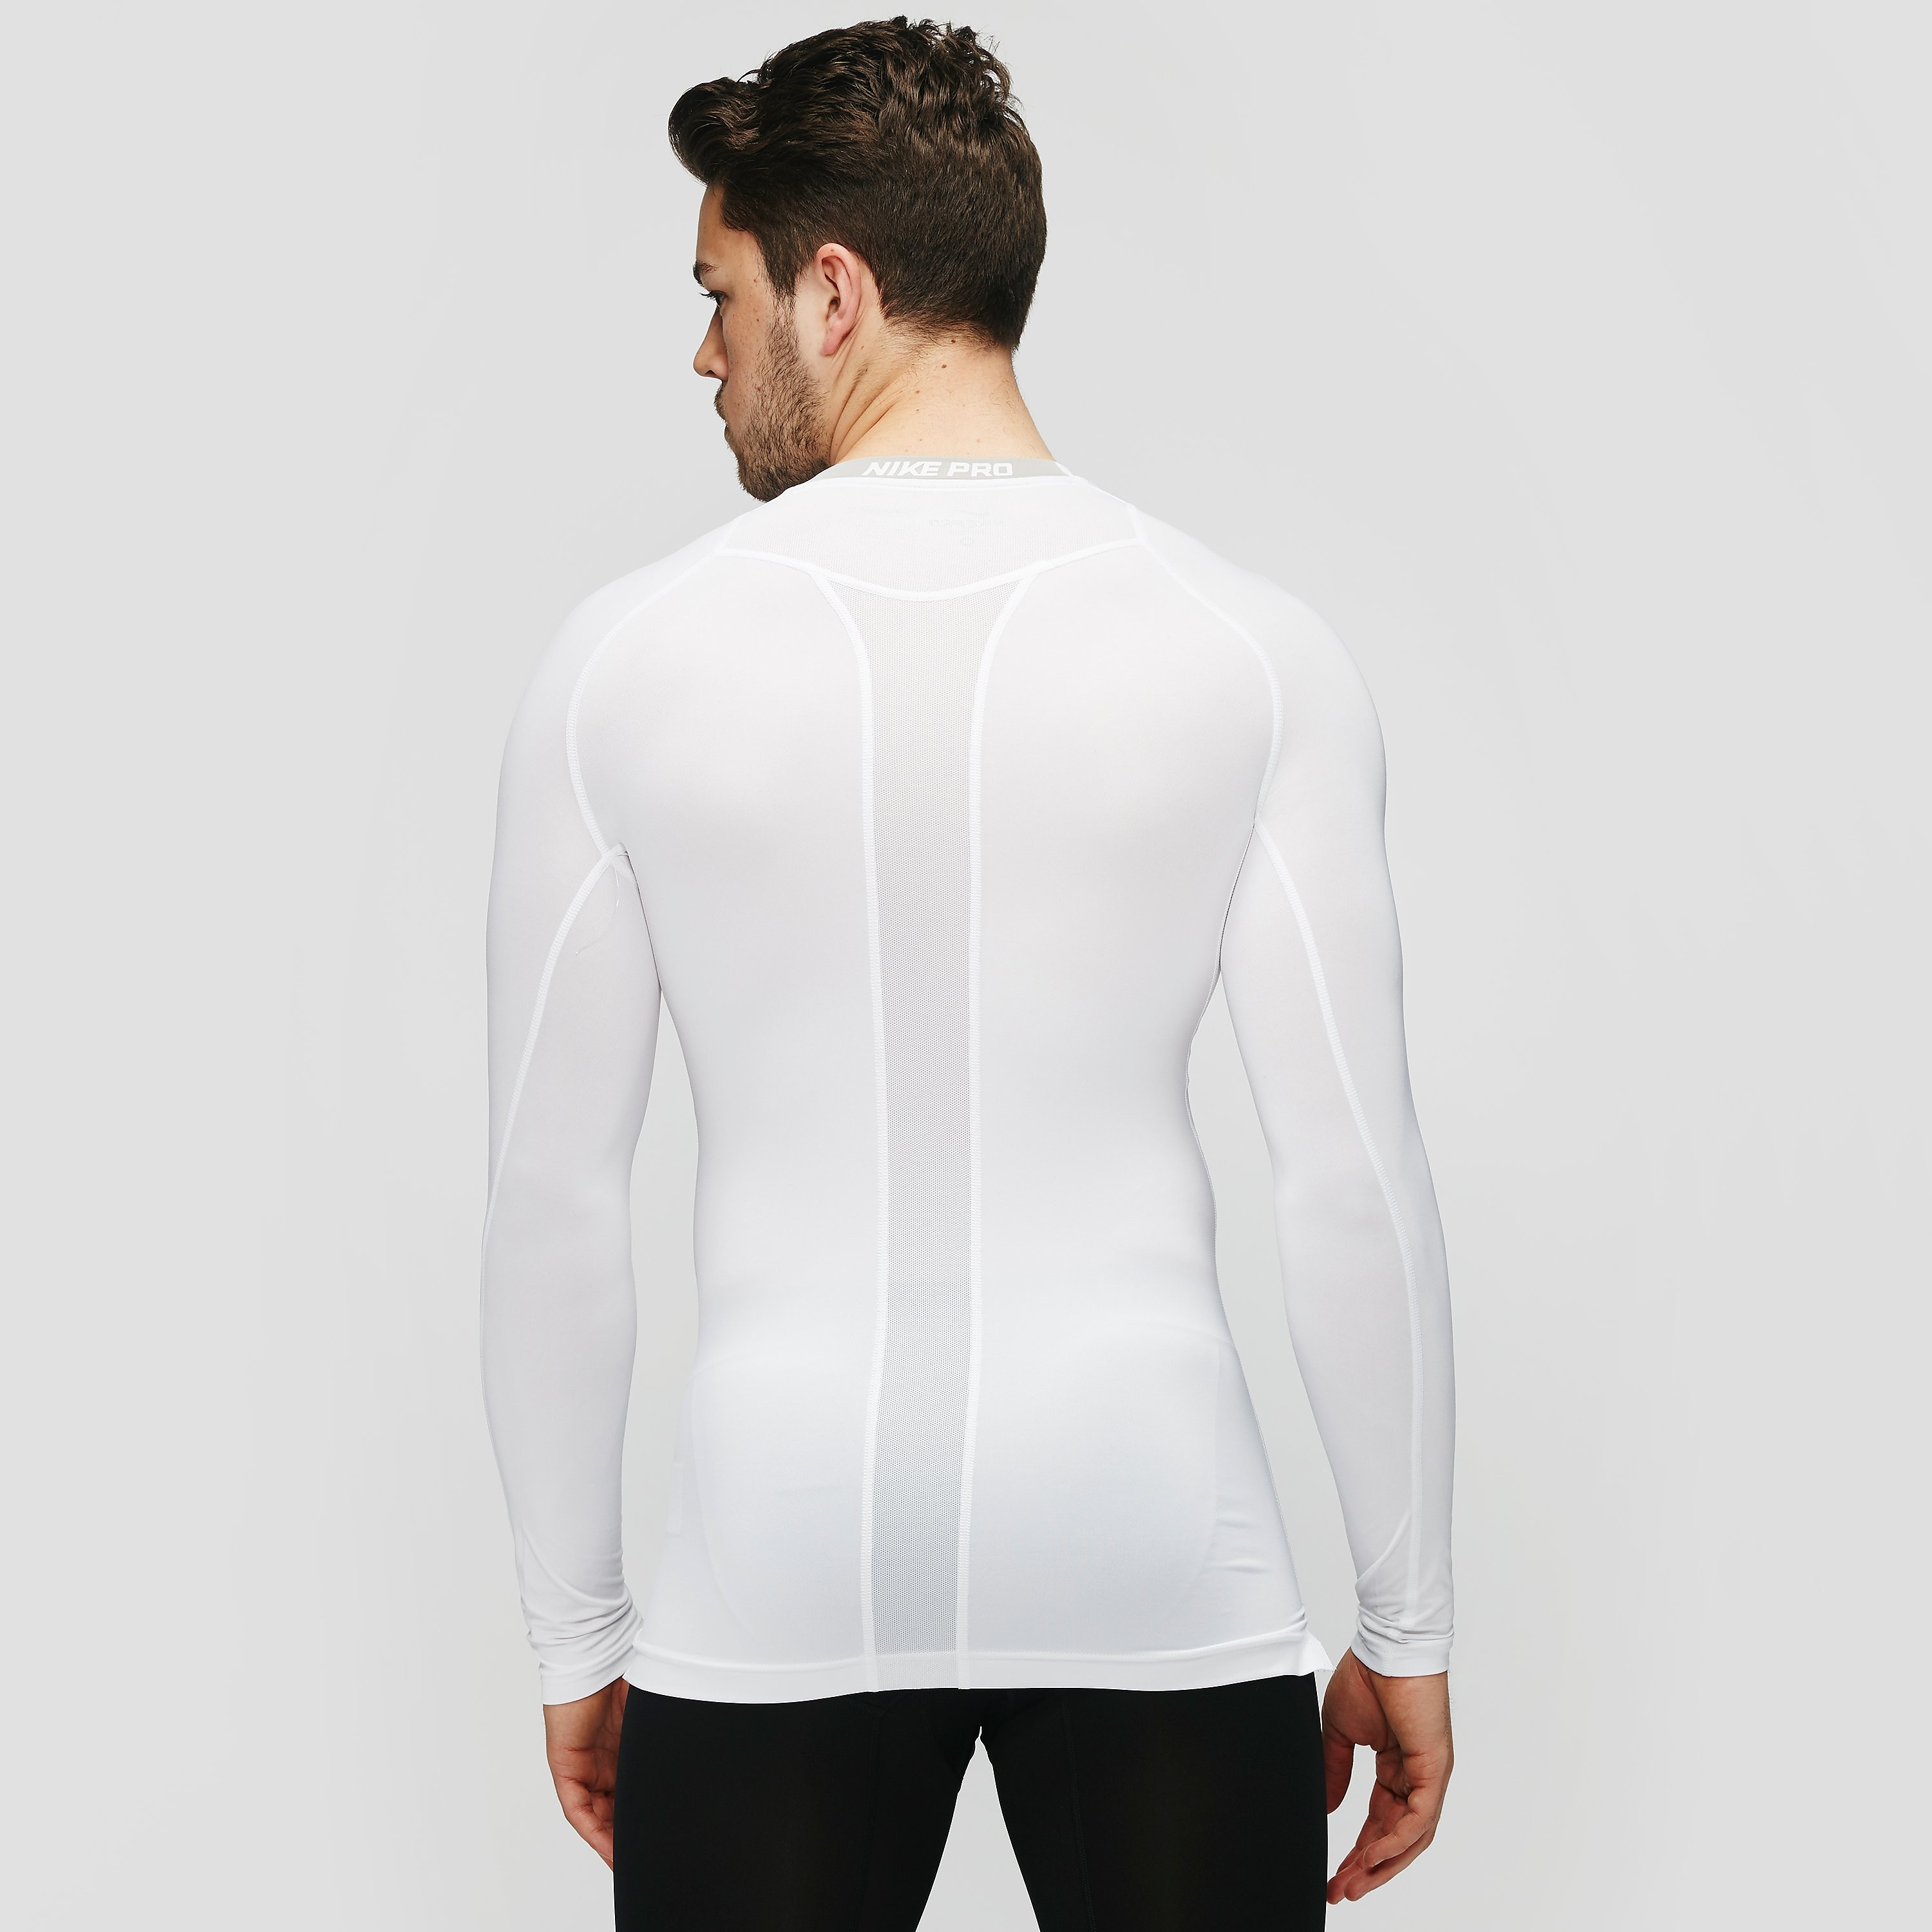 Nike Pro Cool Compression Men's Long-Sleeve Shirt